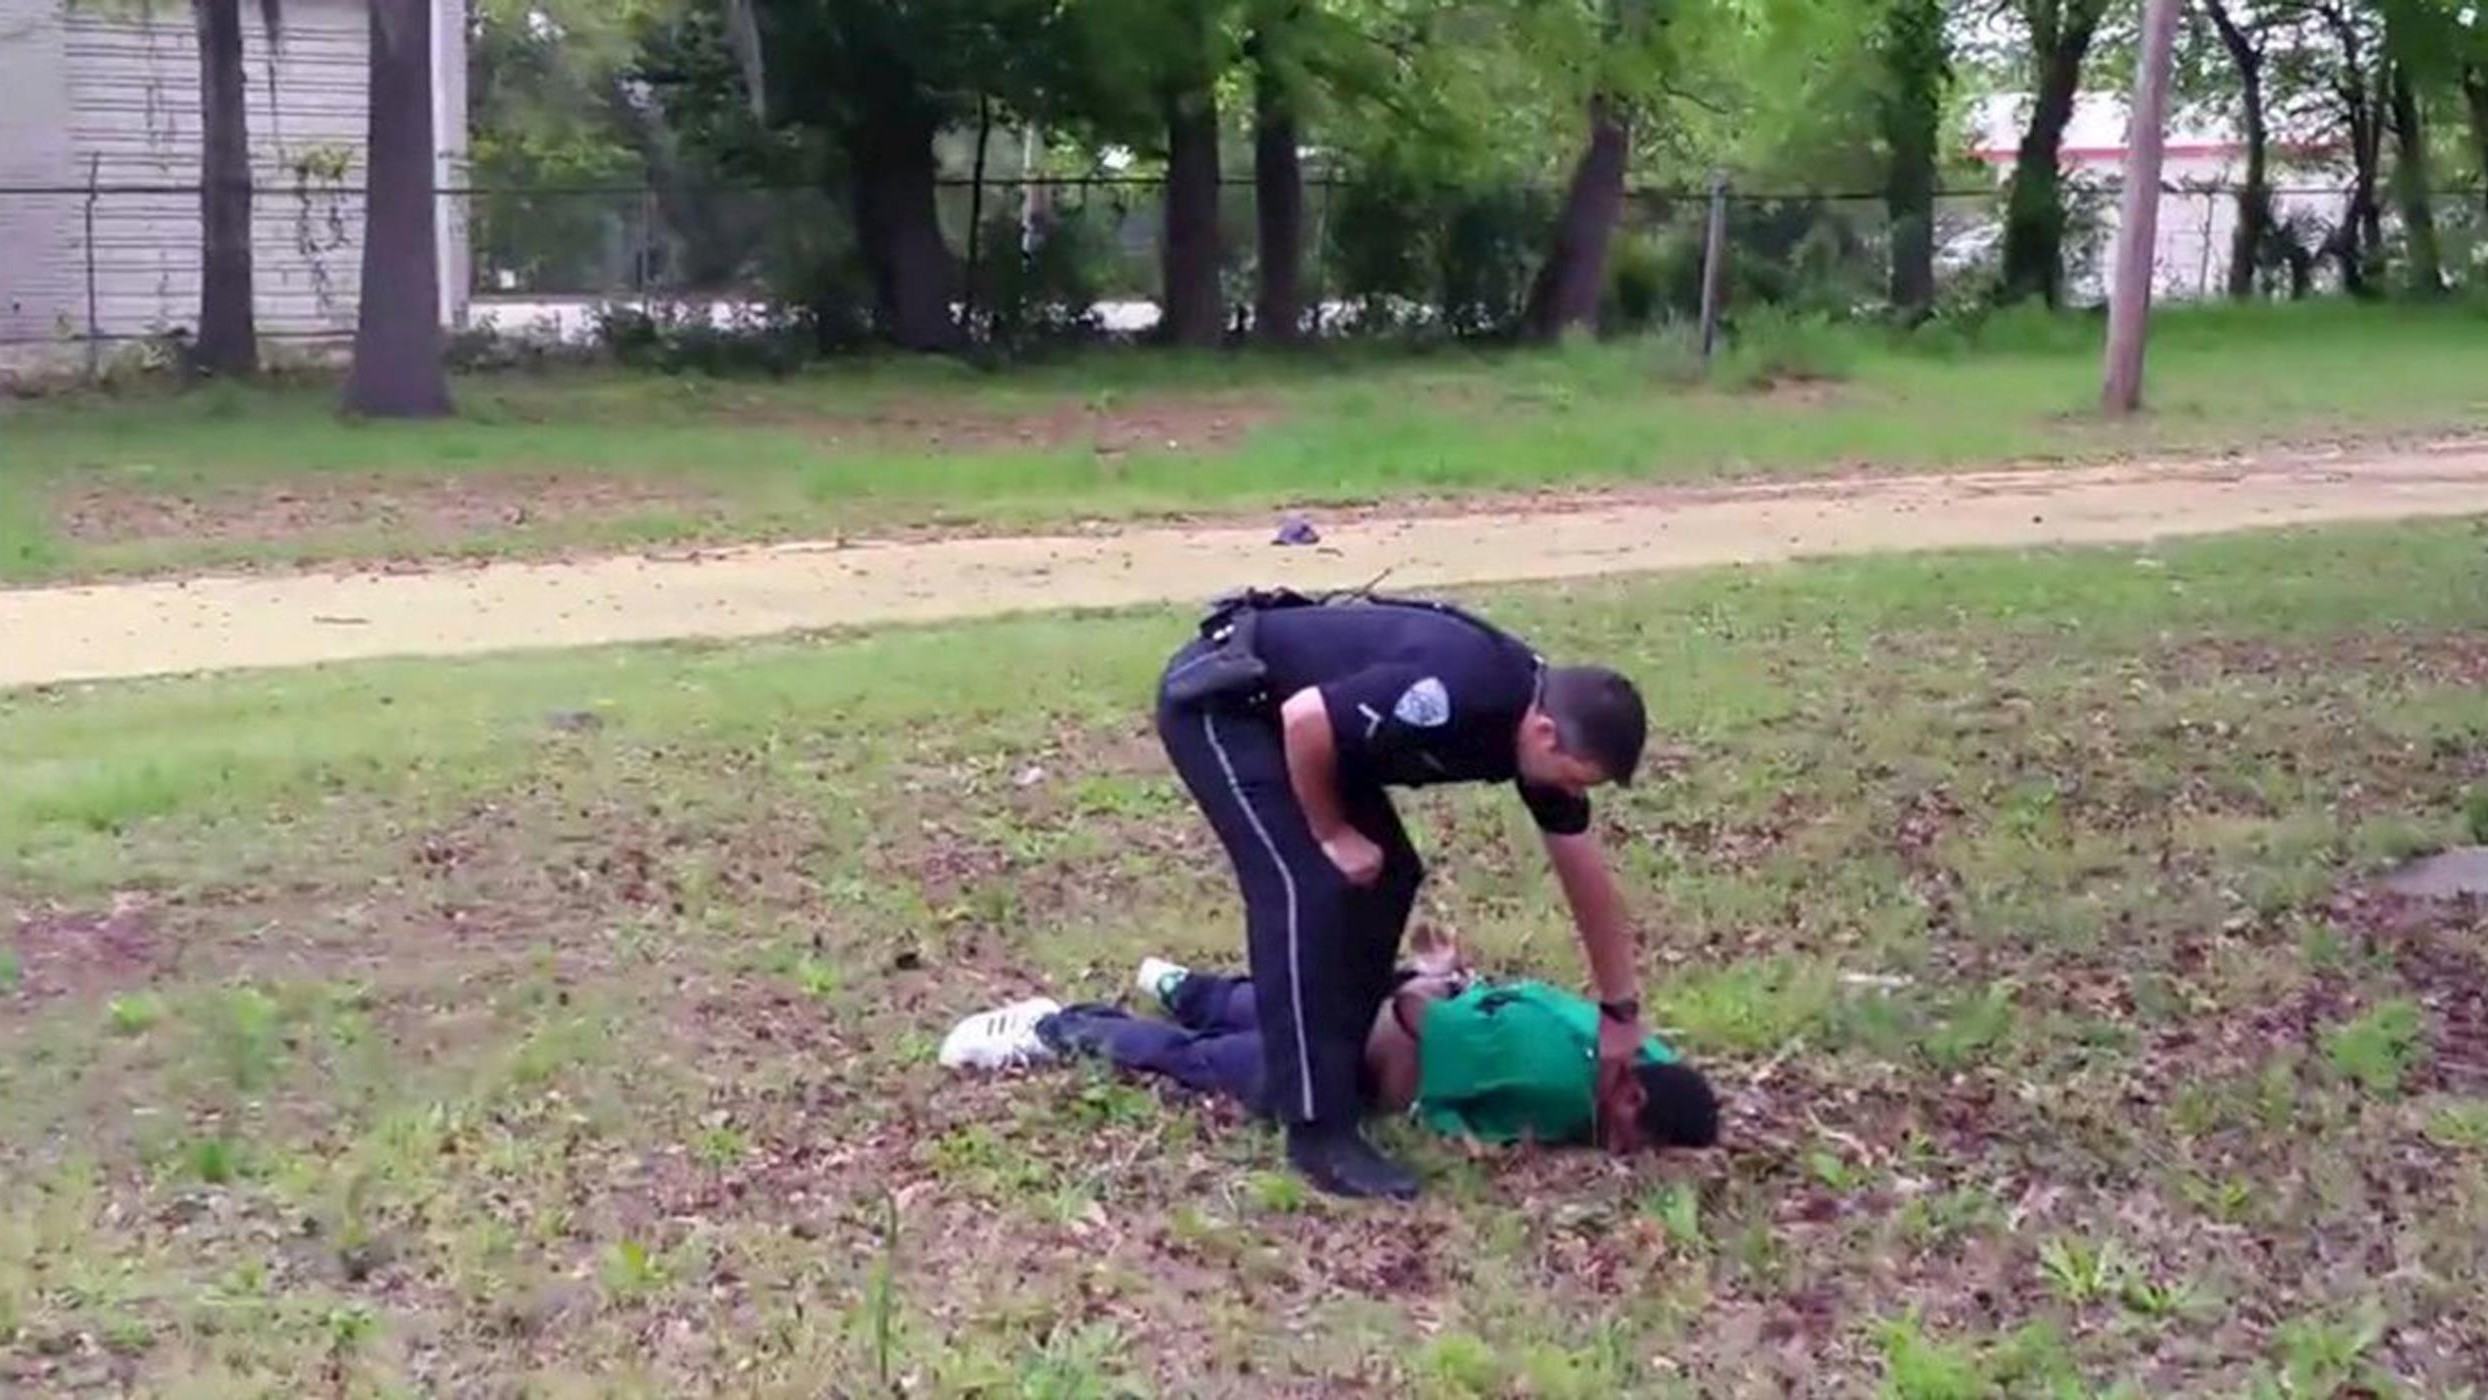 South Carolina City to Pay Walter Scott's Family $6.5m in Police Shooting Settlement